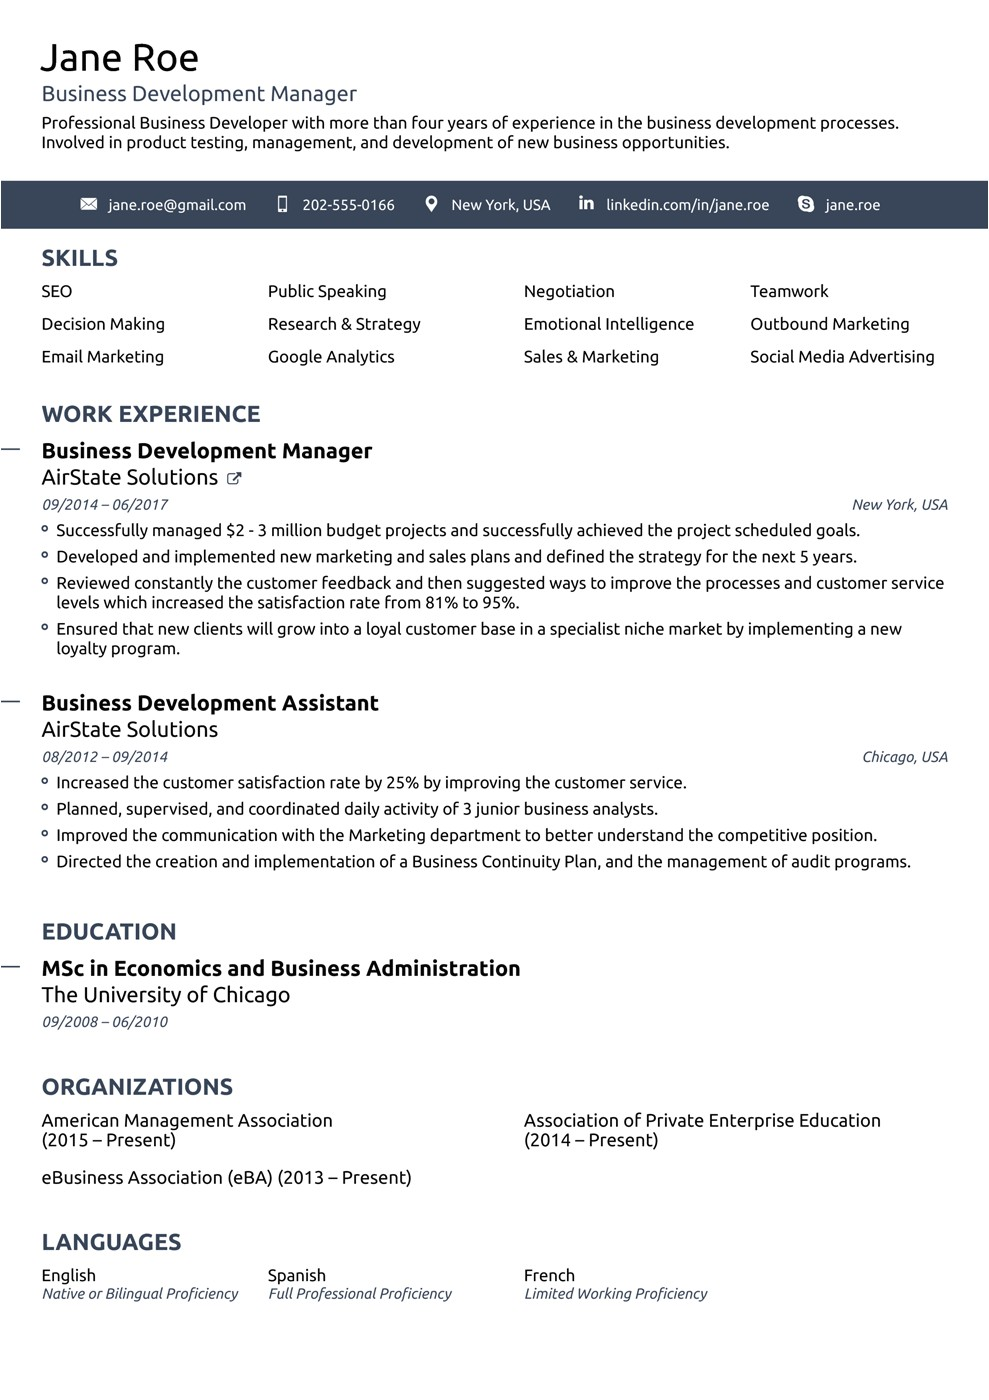 Resume Template Images 2018 Professional Resume Templates as they Should Be 8